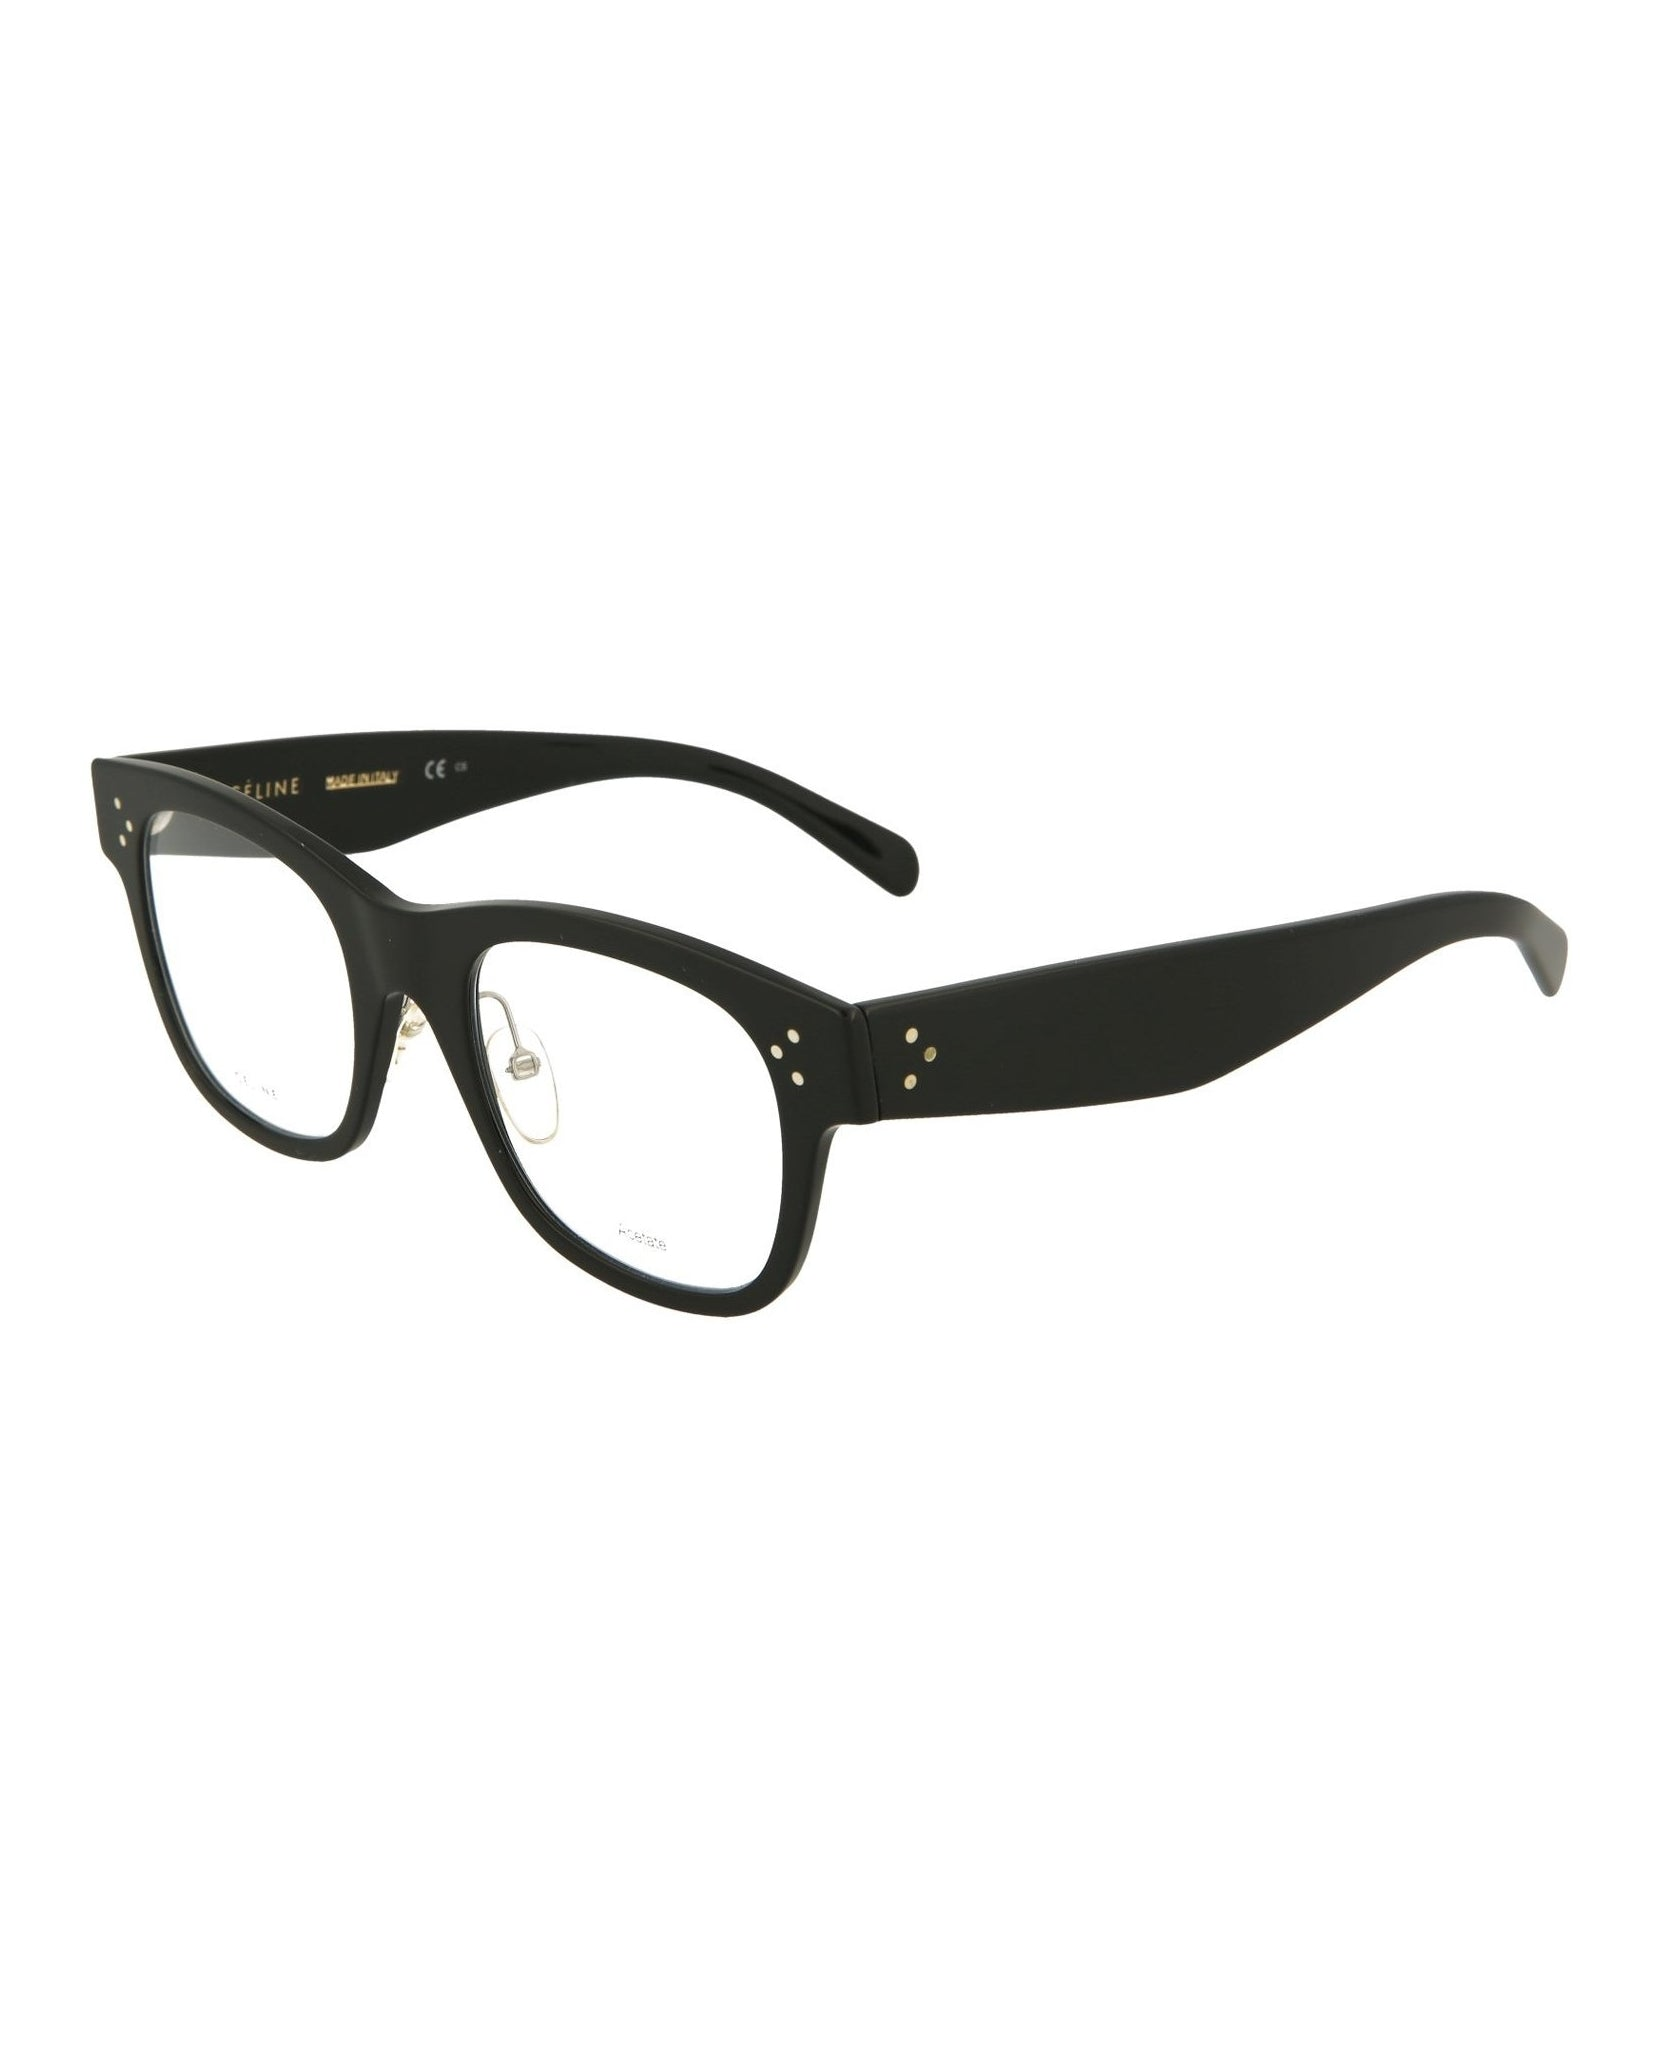 Celine Square Optical Glasses